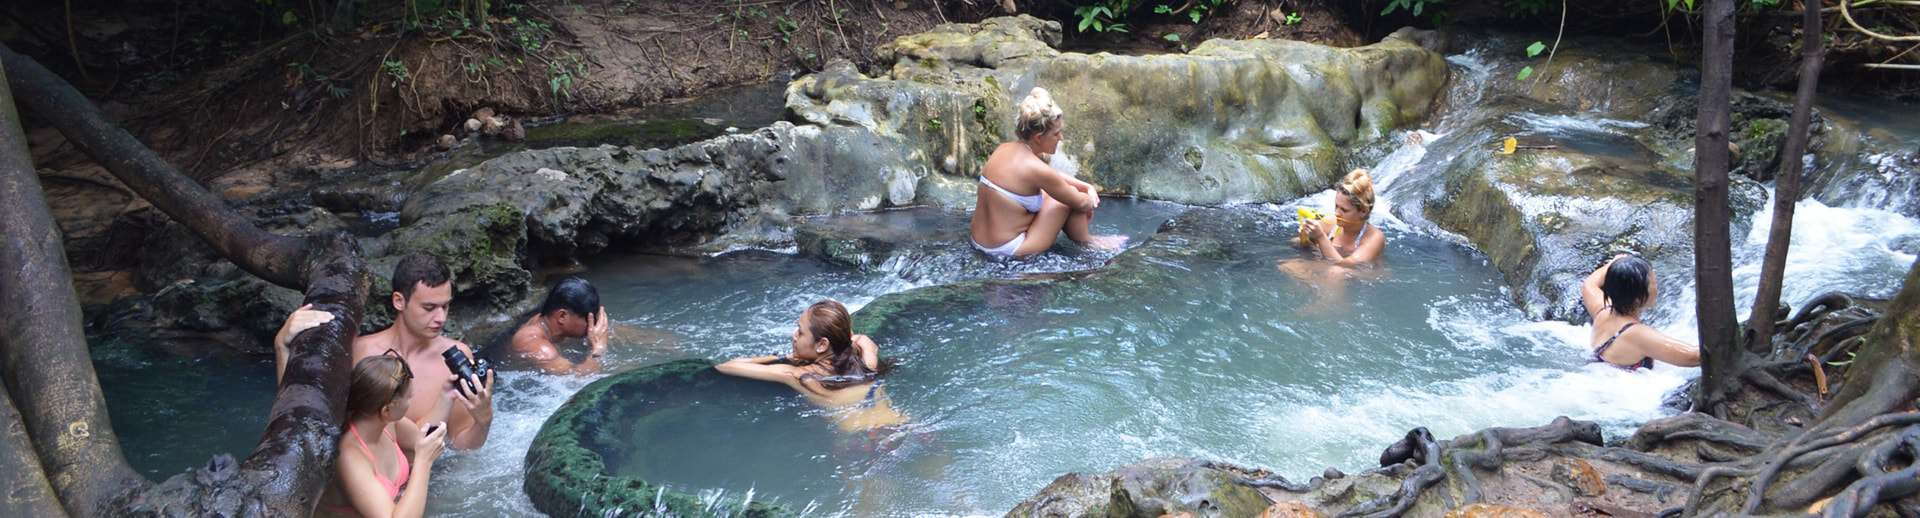 hot spring tour krabi thailand